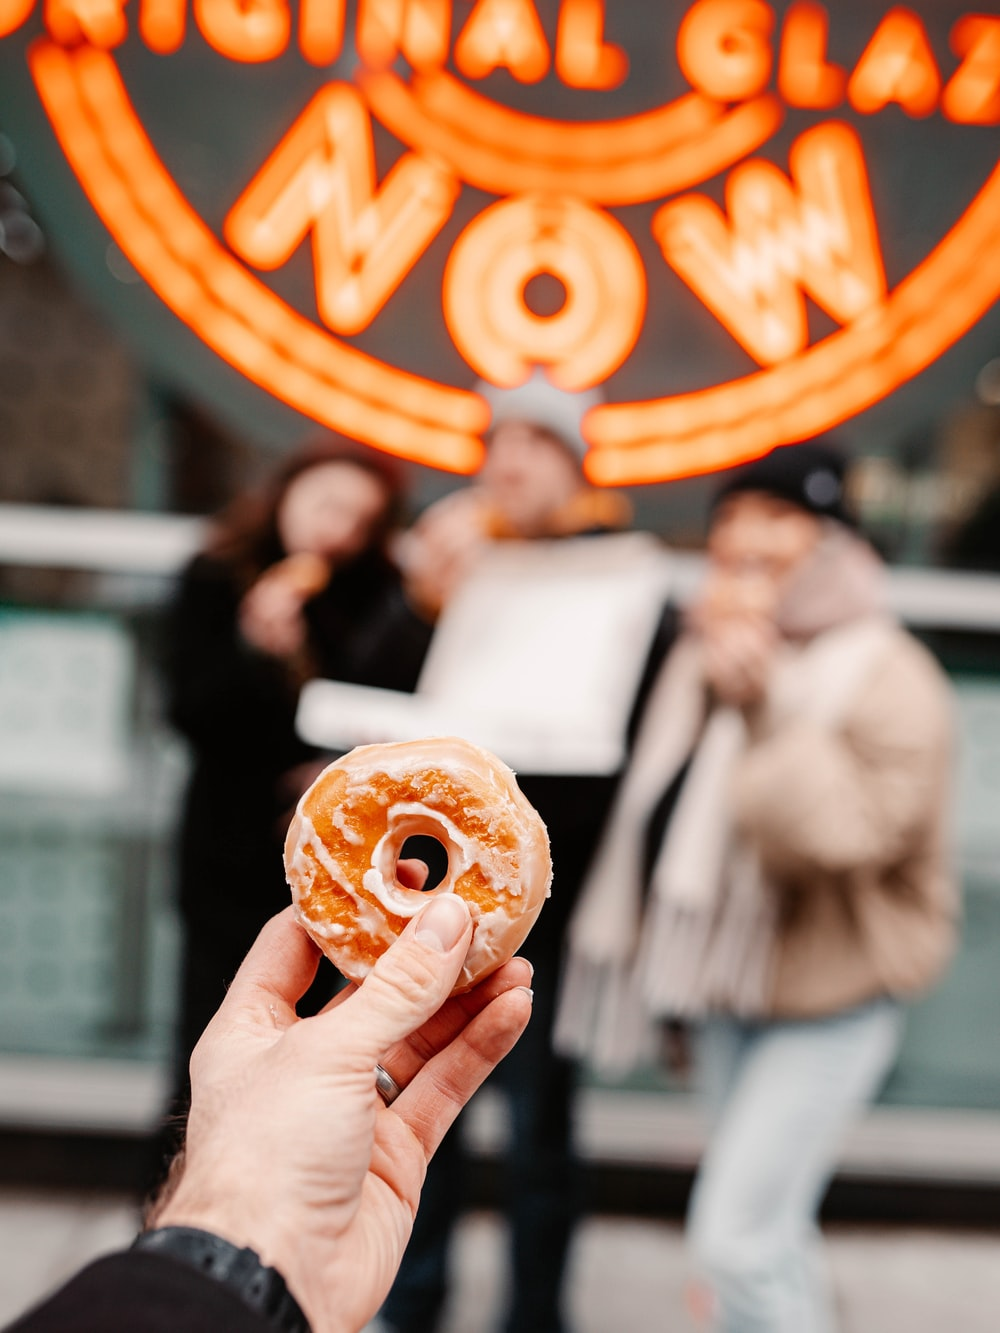 person holding brown donut with orange and white toppings